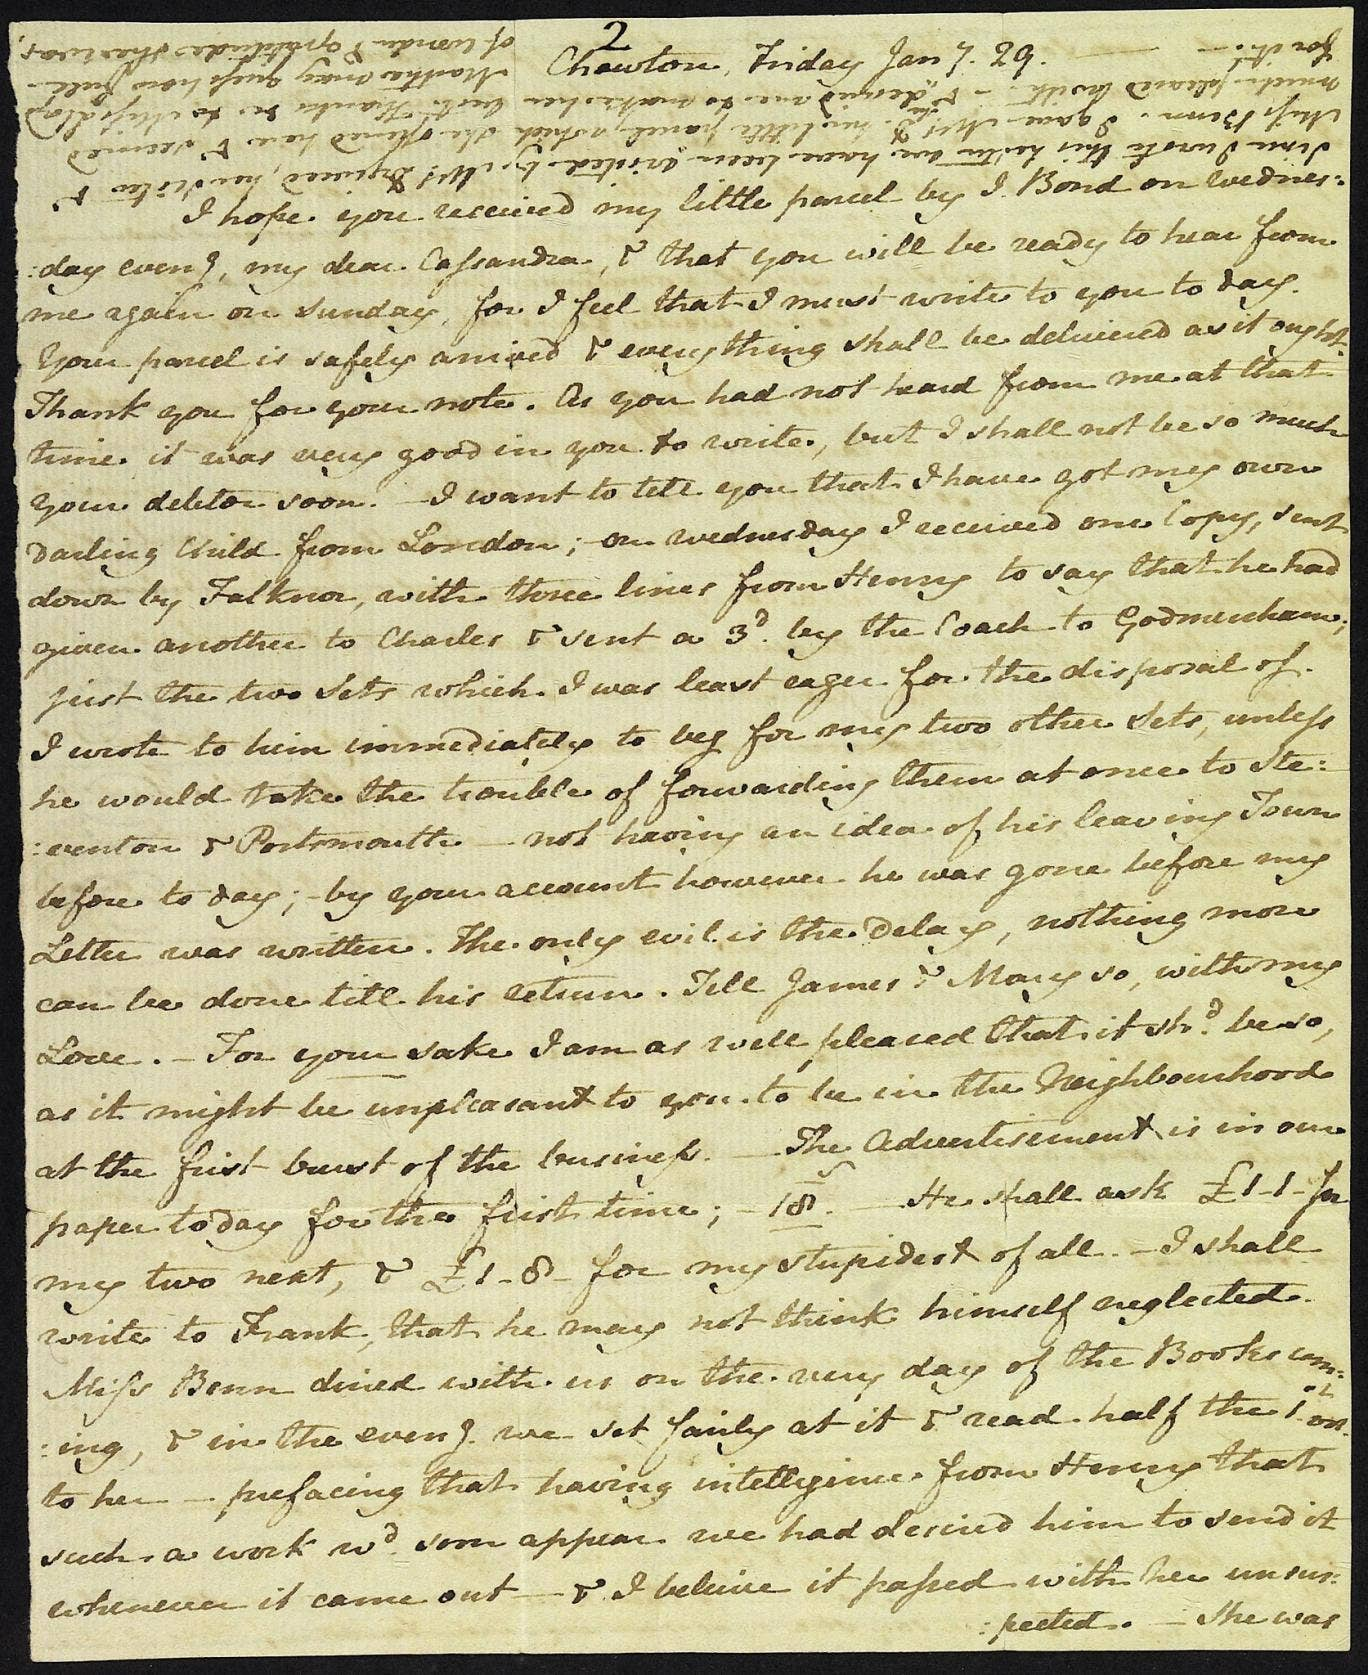 'Darling child' letter from Jane Austen to her sister Cassandra about Pride and Prejudice.